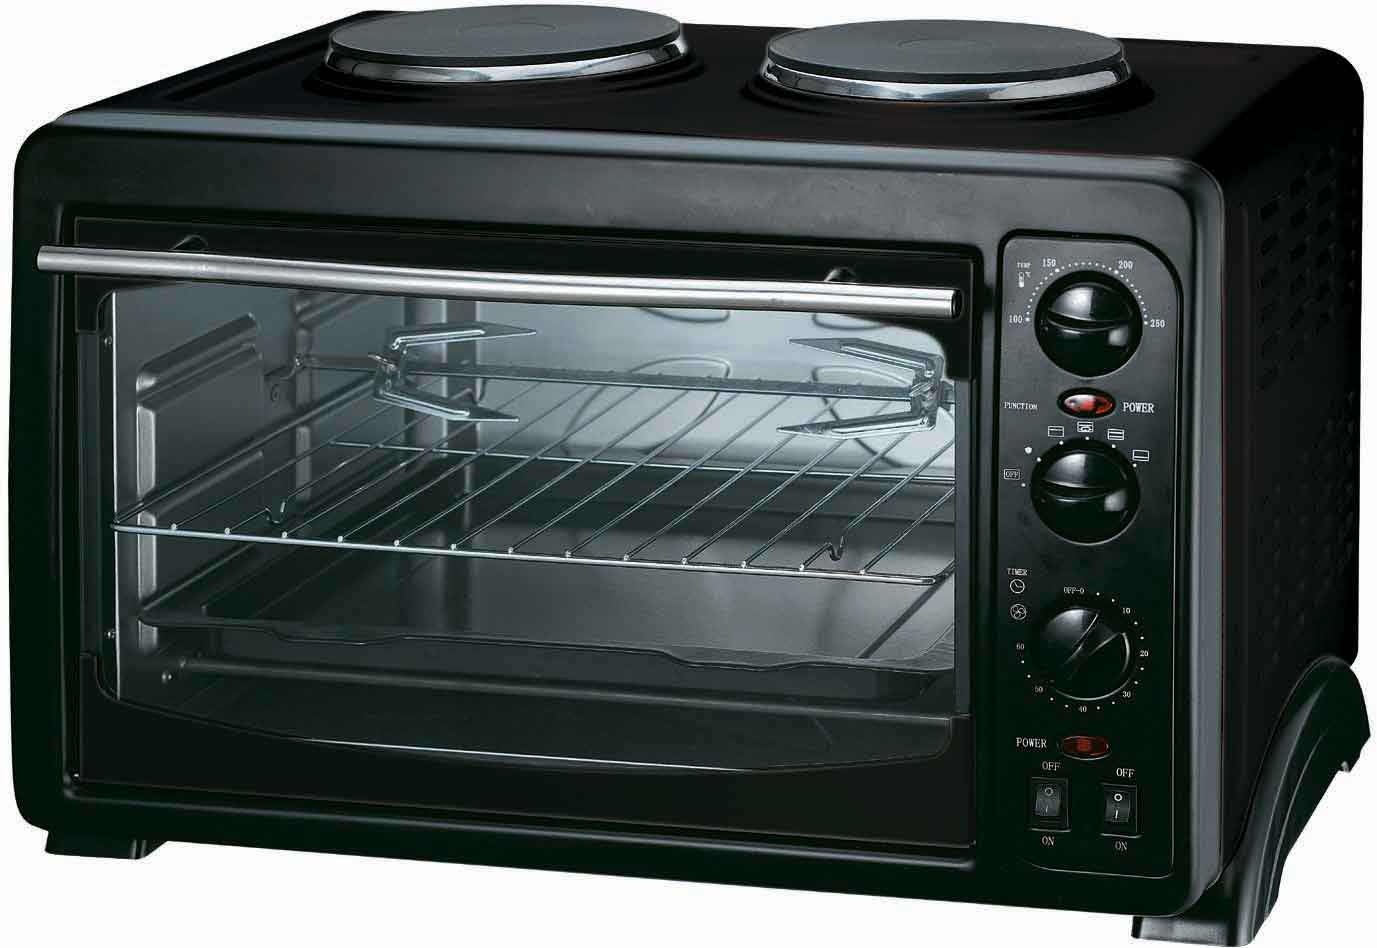 Countertop Oven Toaster : Black Toaster Toaster oven in black